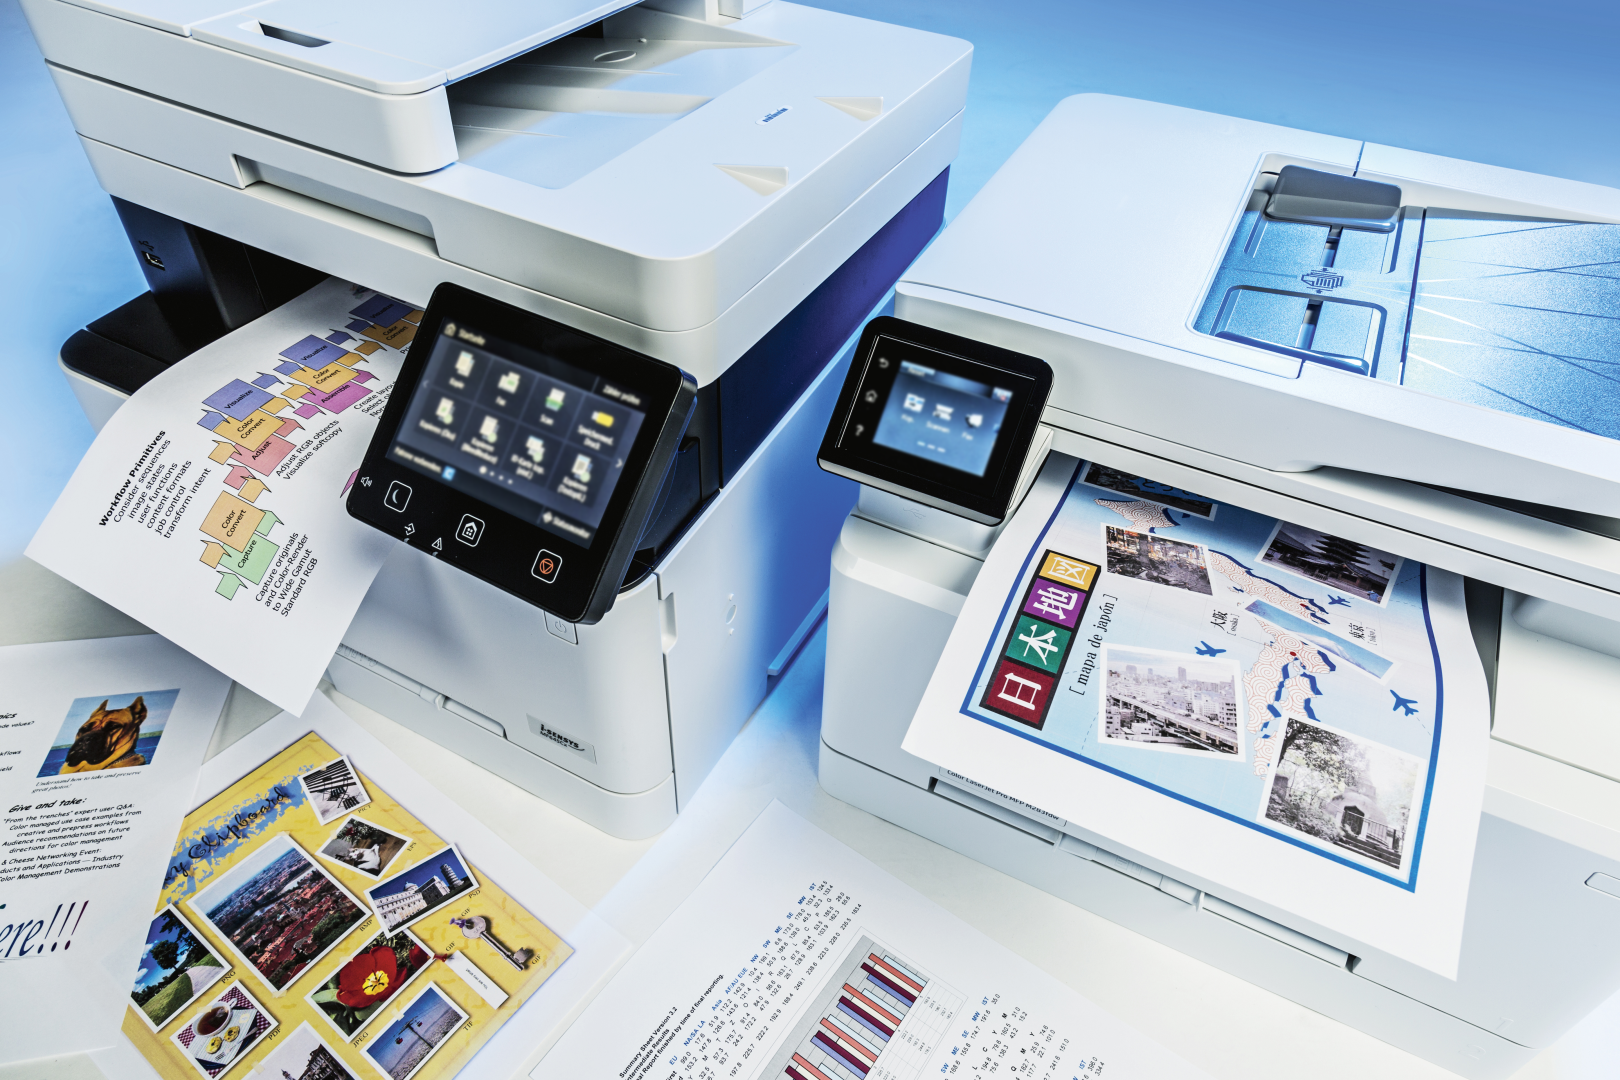 all-in-one printer kleurenlaser test review vergelijking HP Brother Canon Lexmark